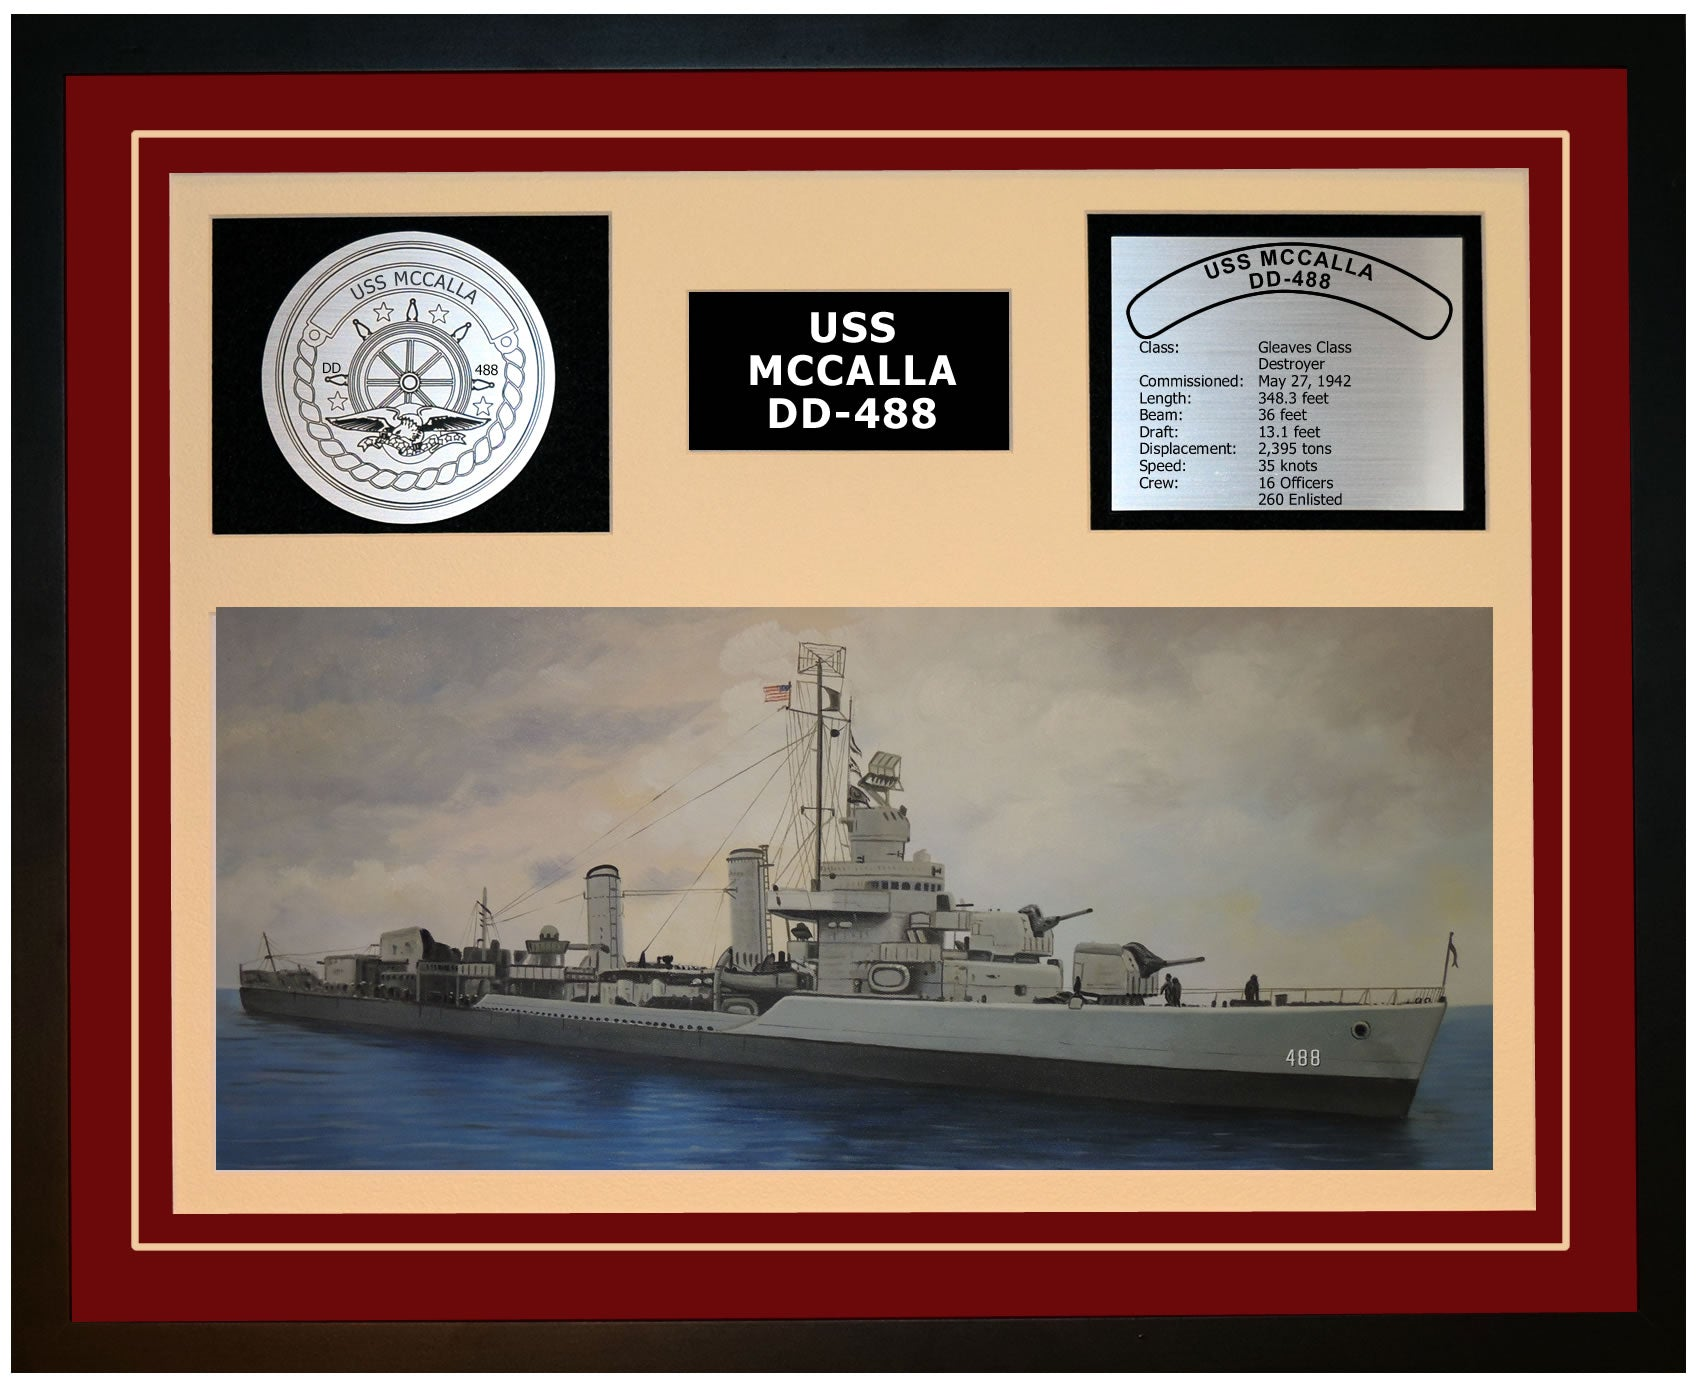 USS MCCALLA DD-488 Framed Navy Ship Display Burgundy